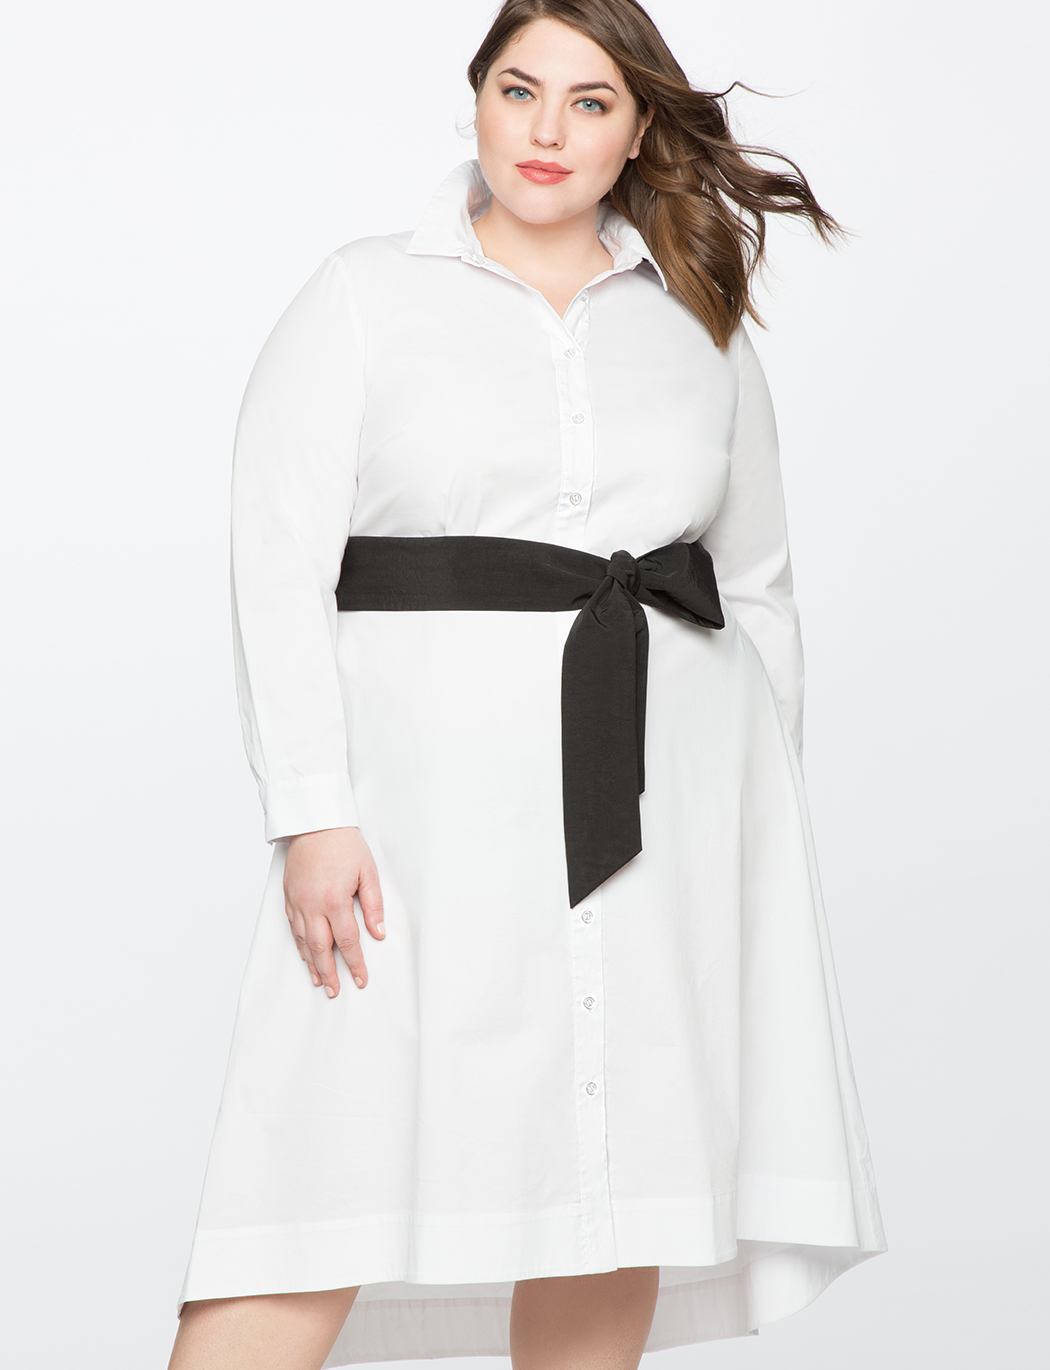 High Low Shirt Dress with Contrast Belt | Women\'s Plus Size Dresses |  ELOQUII